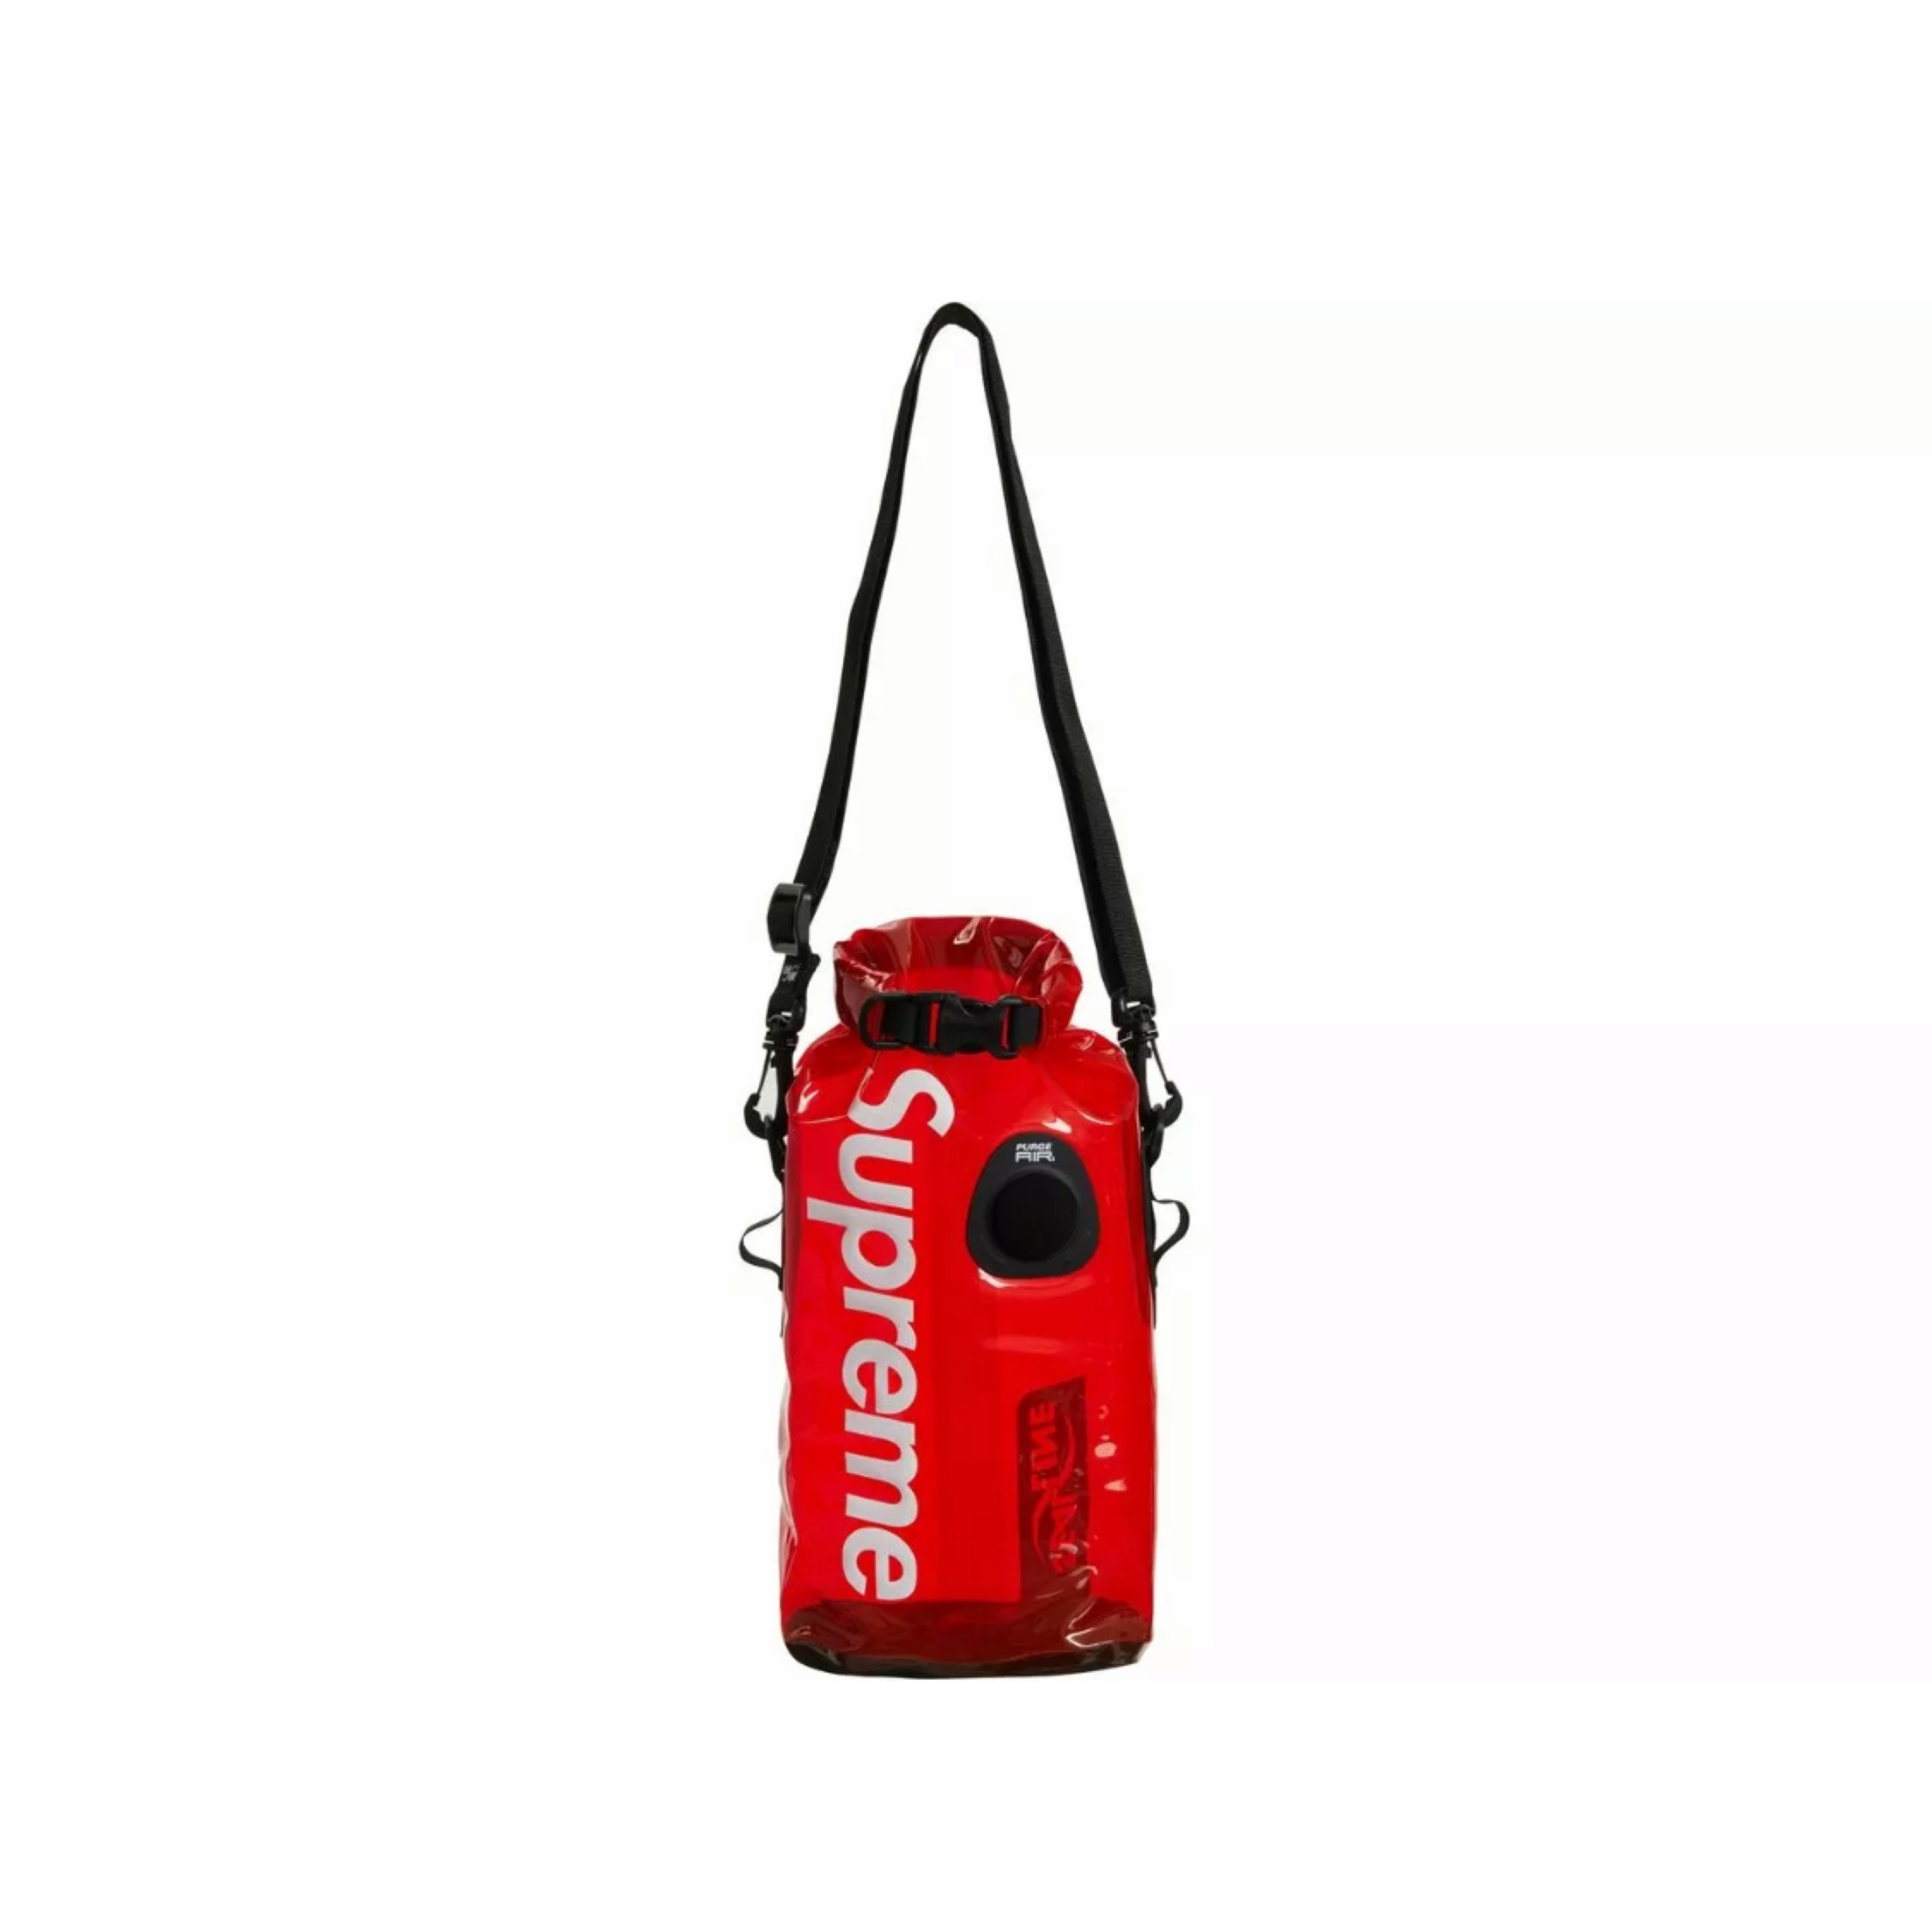 Brand New Supreme X Sealline Discovery Bag 20L Red